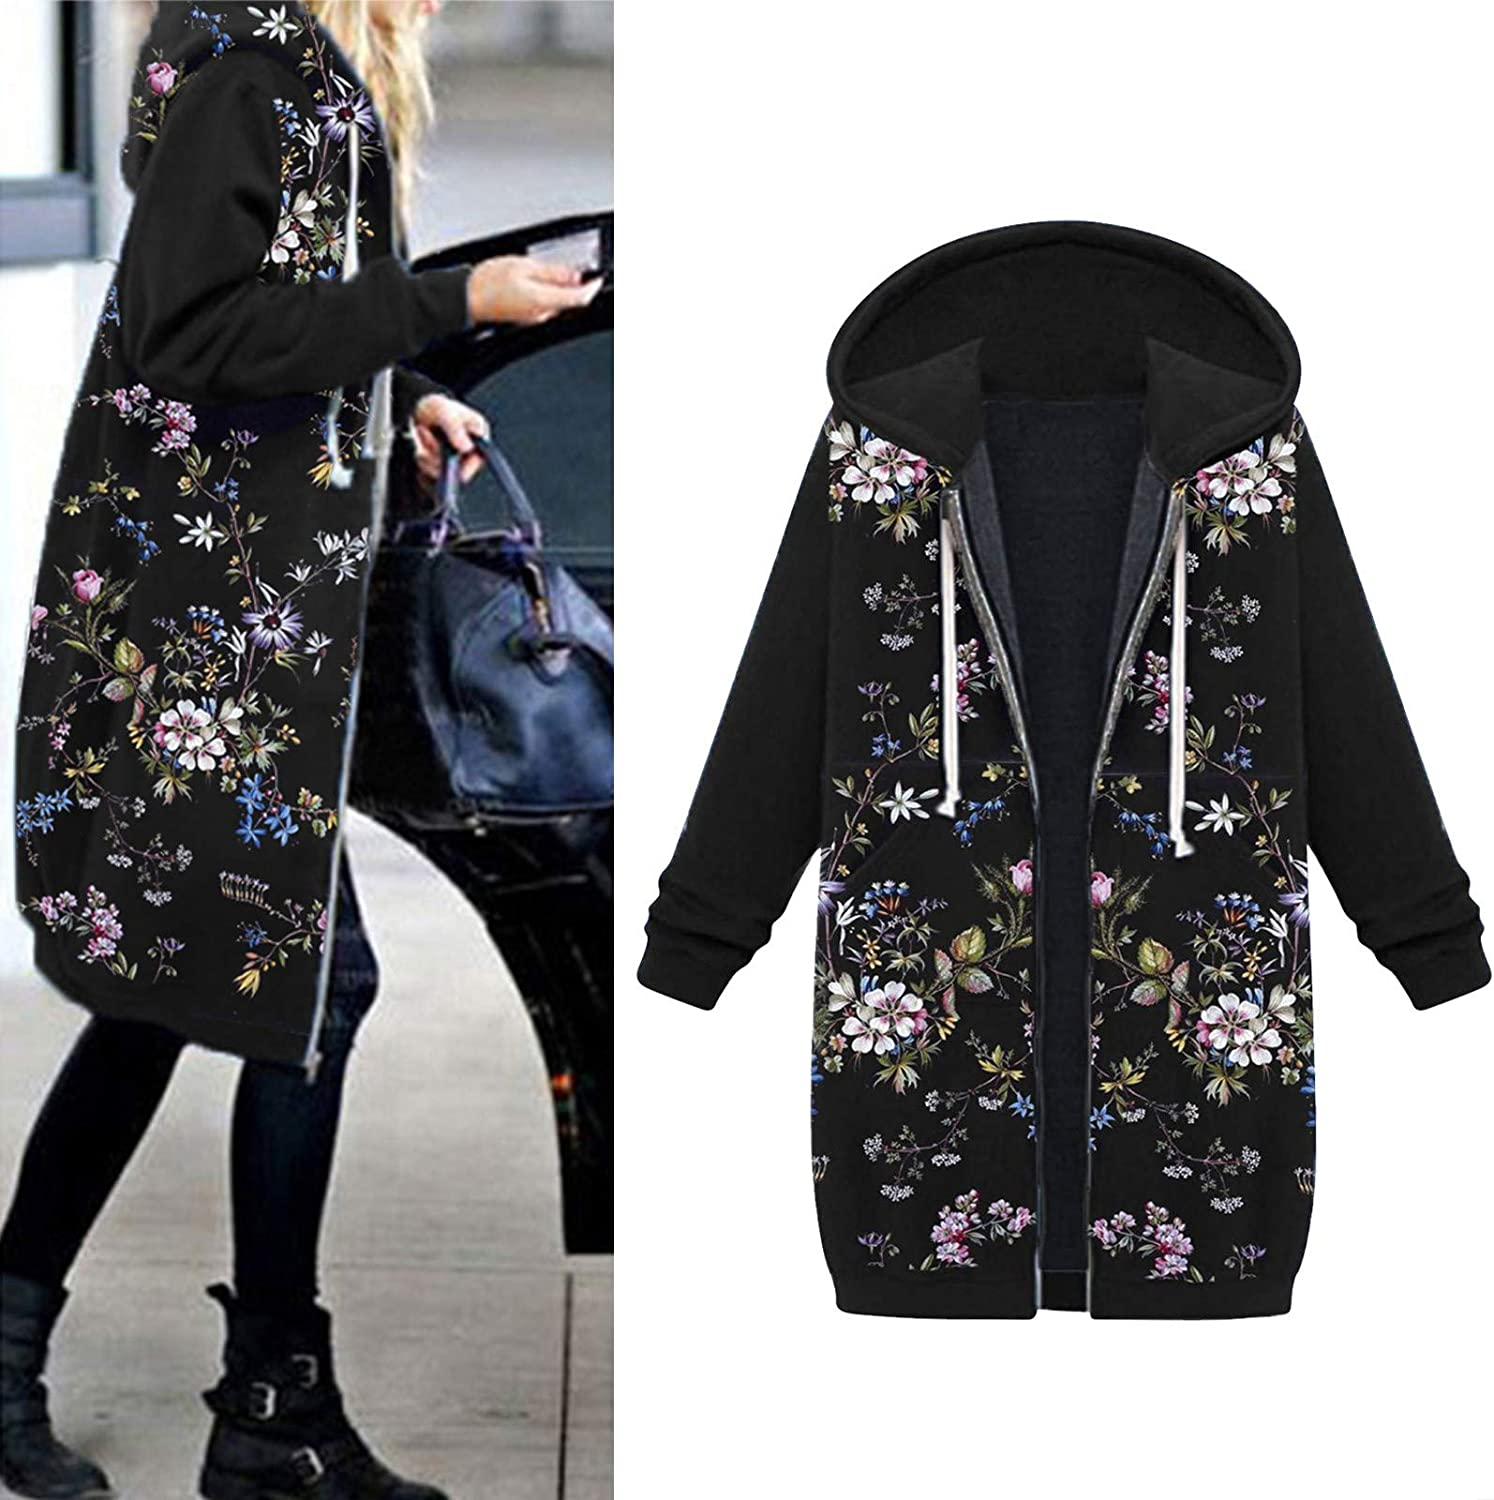 Women Fall Winter Coats With Hood Vintage Floral Printed Patchwork Long Hooded Outwear Cardigan Overcoats